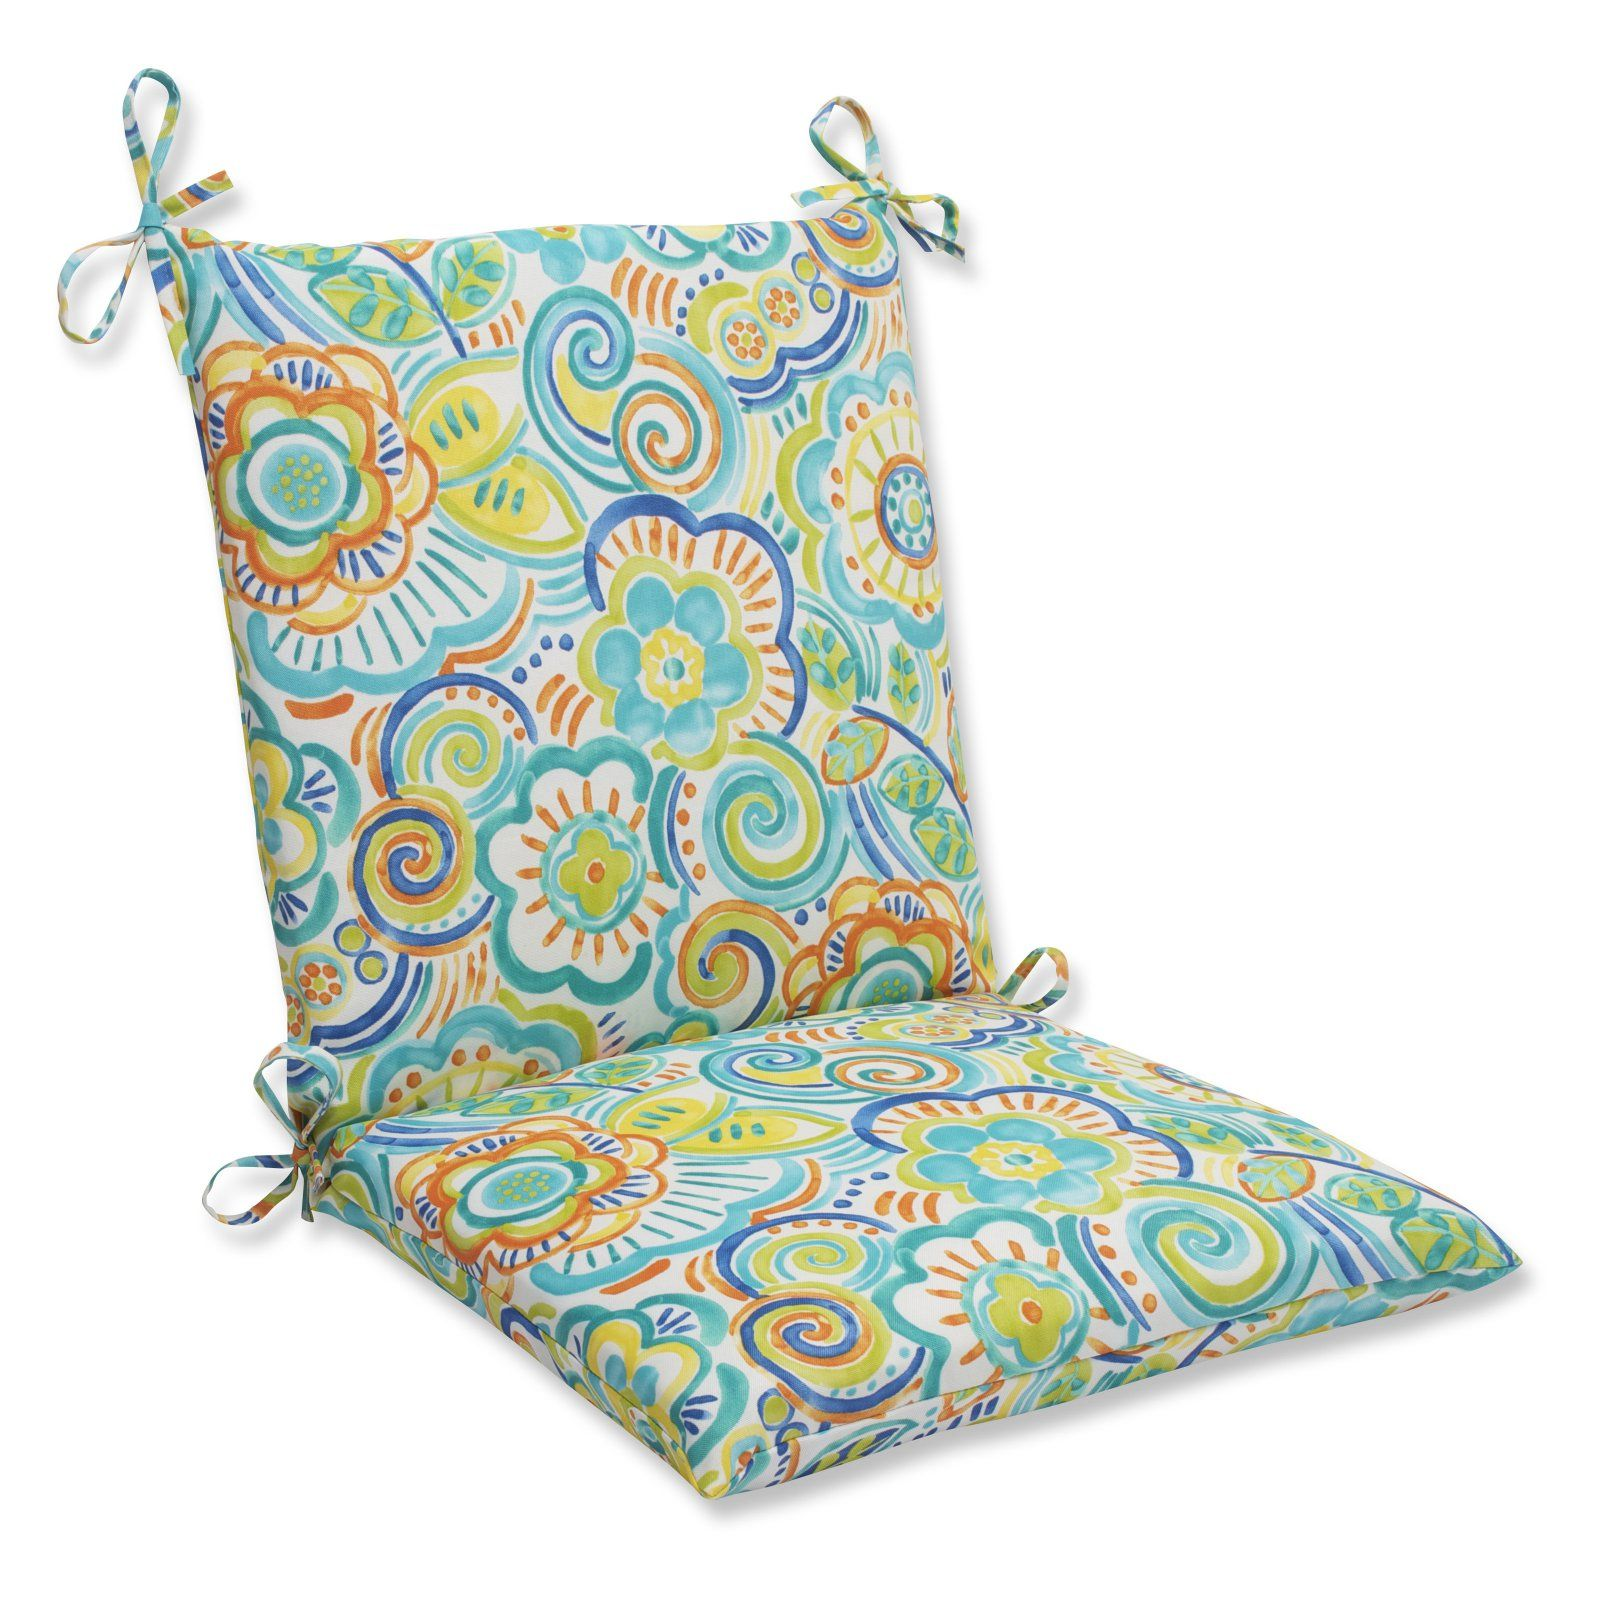 Pillow Perfect Bronwood Squared Corners Hinged Chair Cushion Caribbean